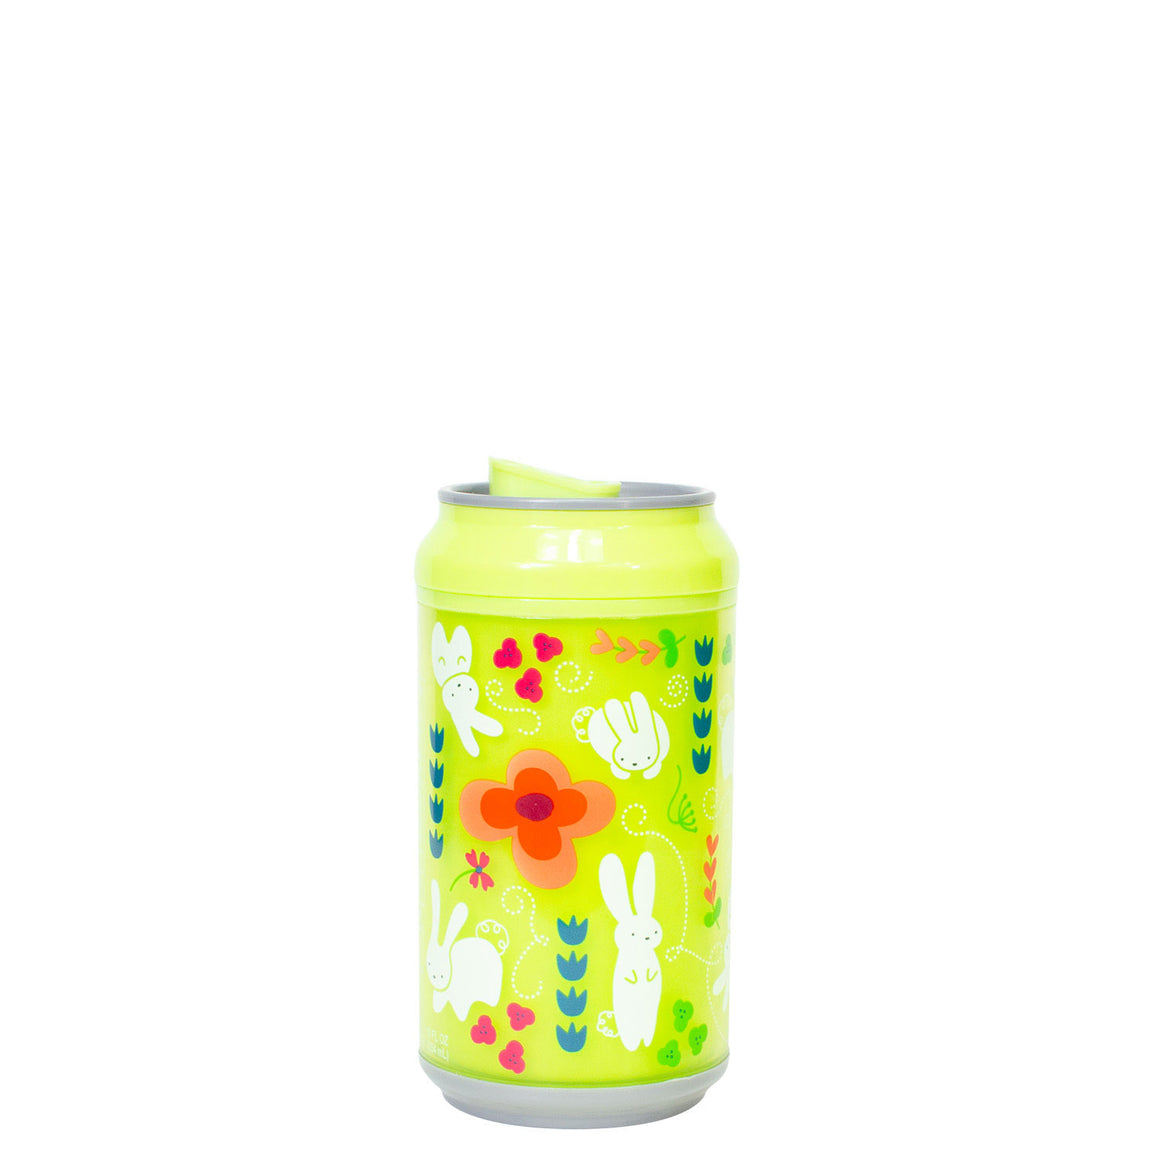 Cool Gear | 12 Oz Easter Coolgearcan in Pastel Green / Bunnies